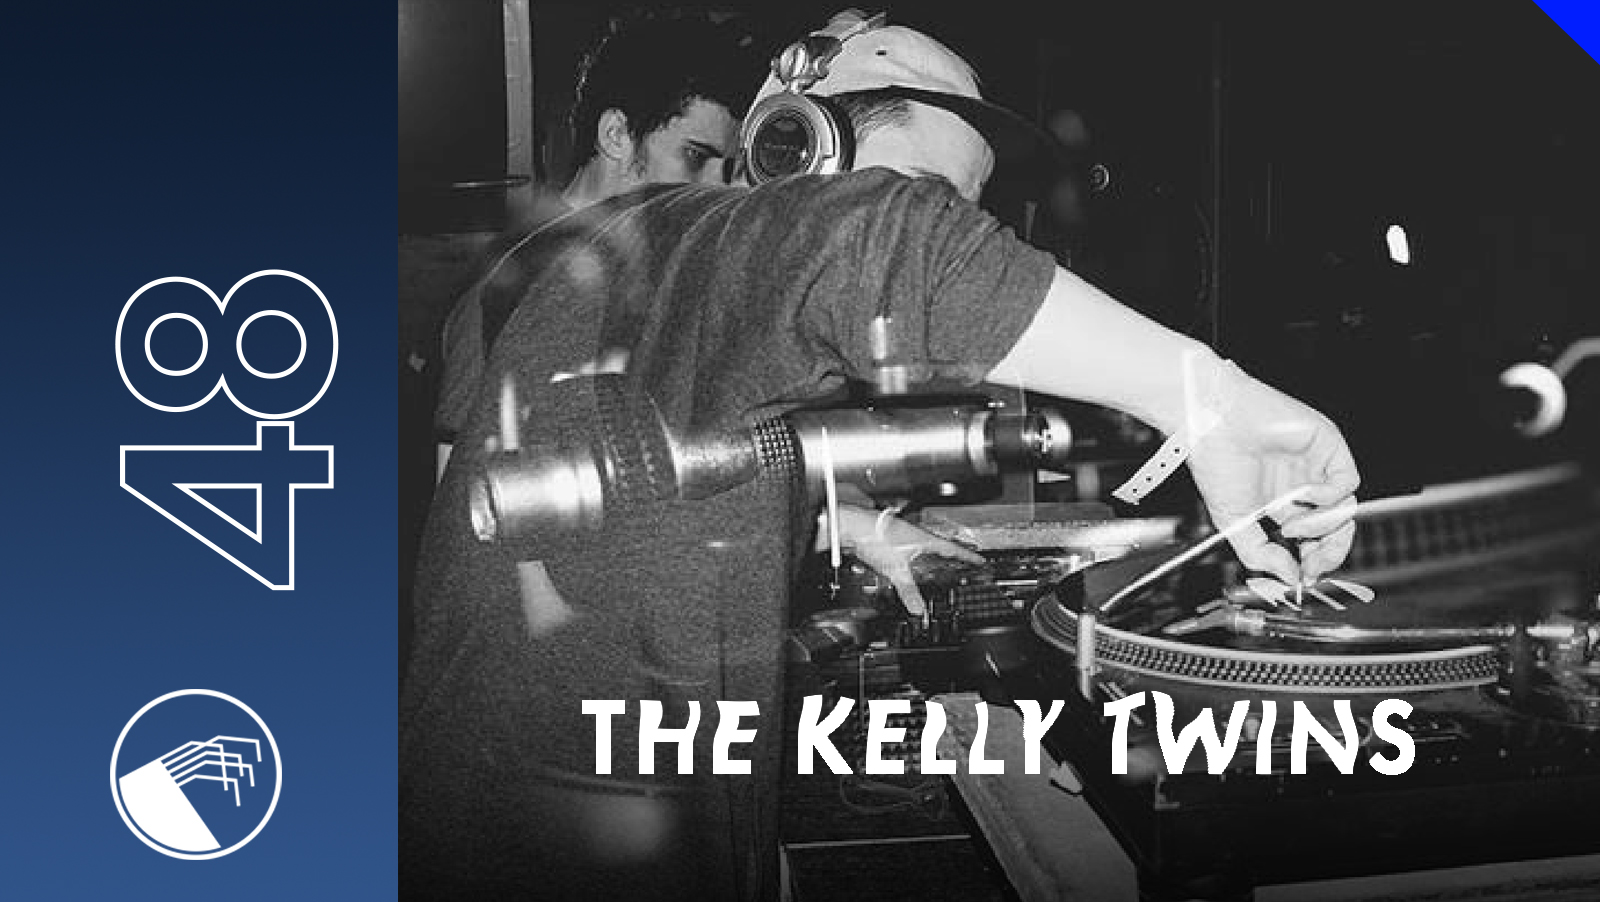 048 The Kelly Twins